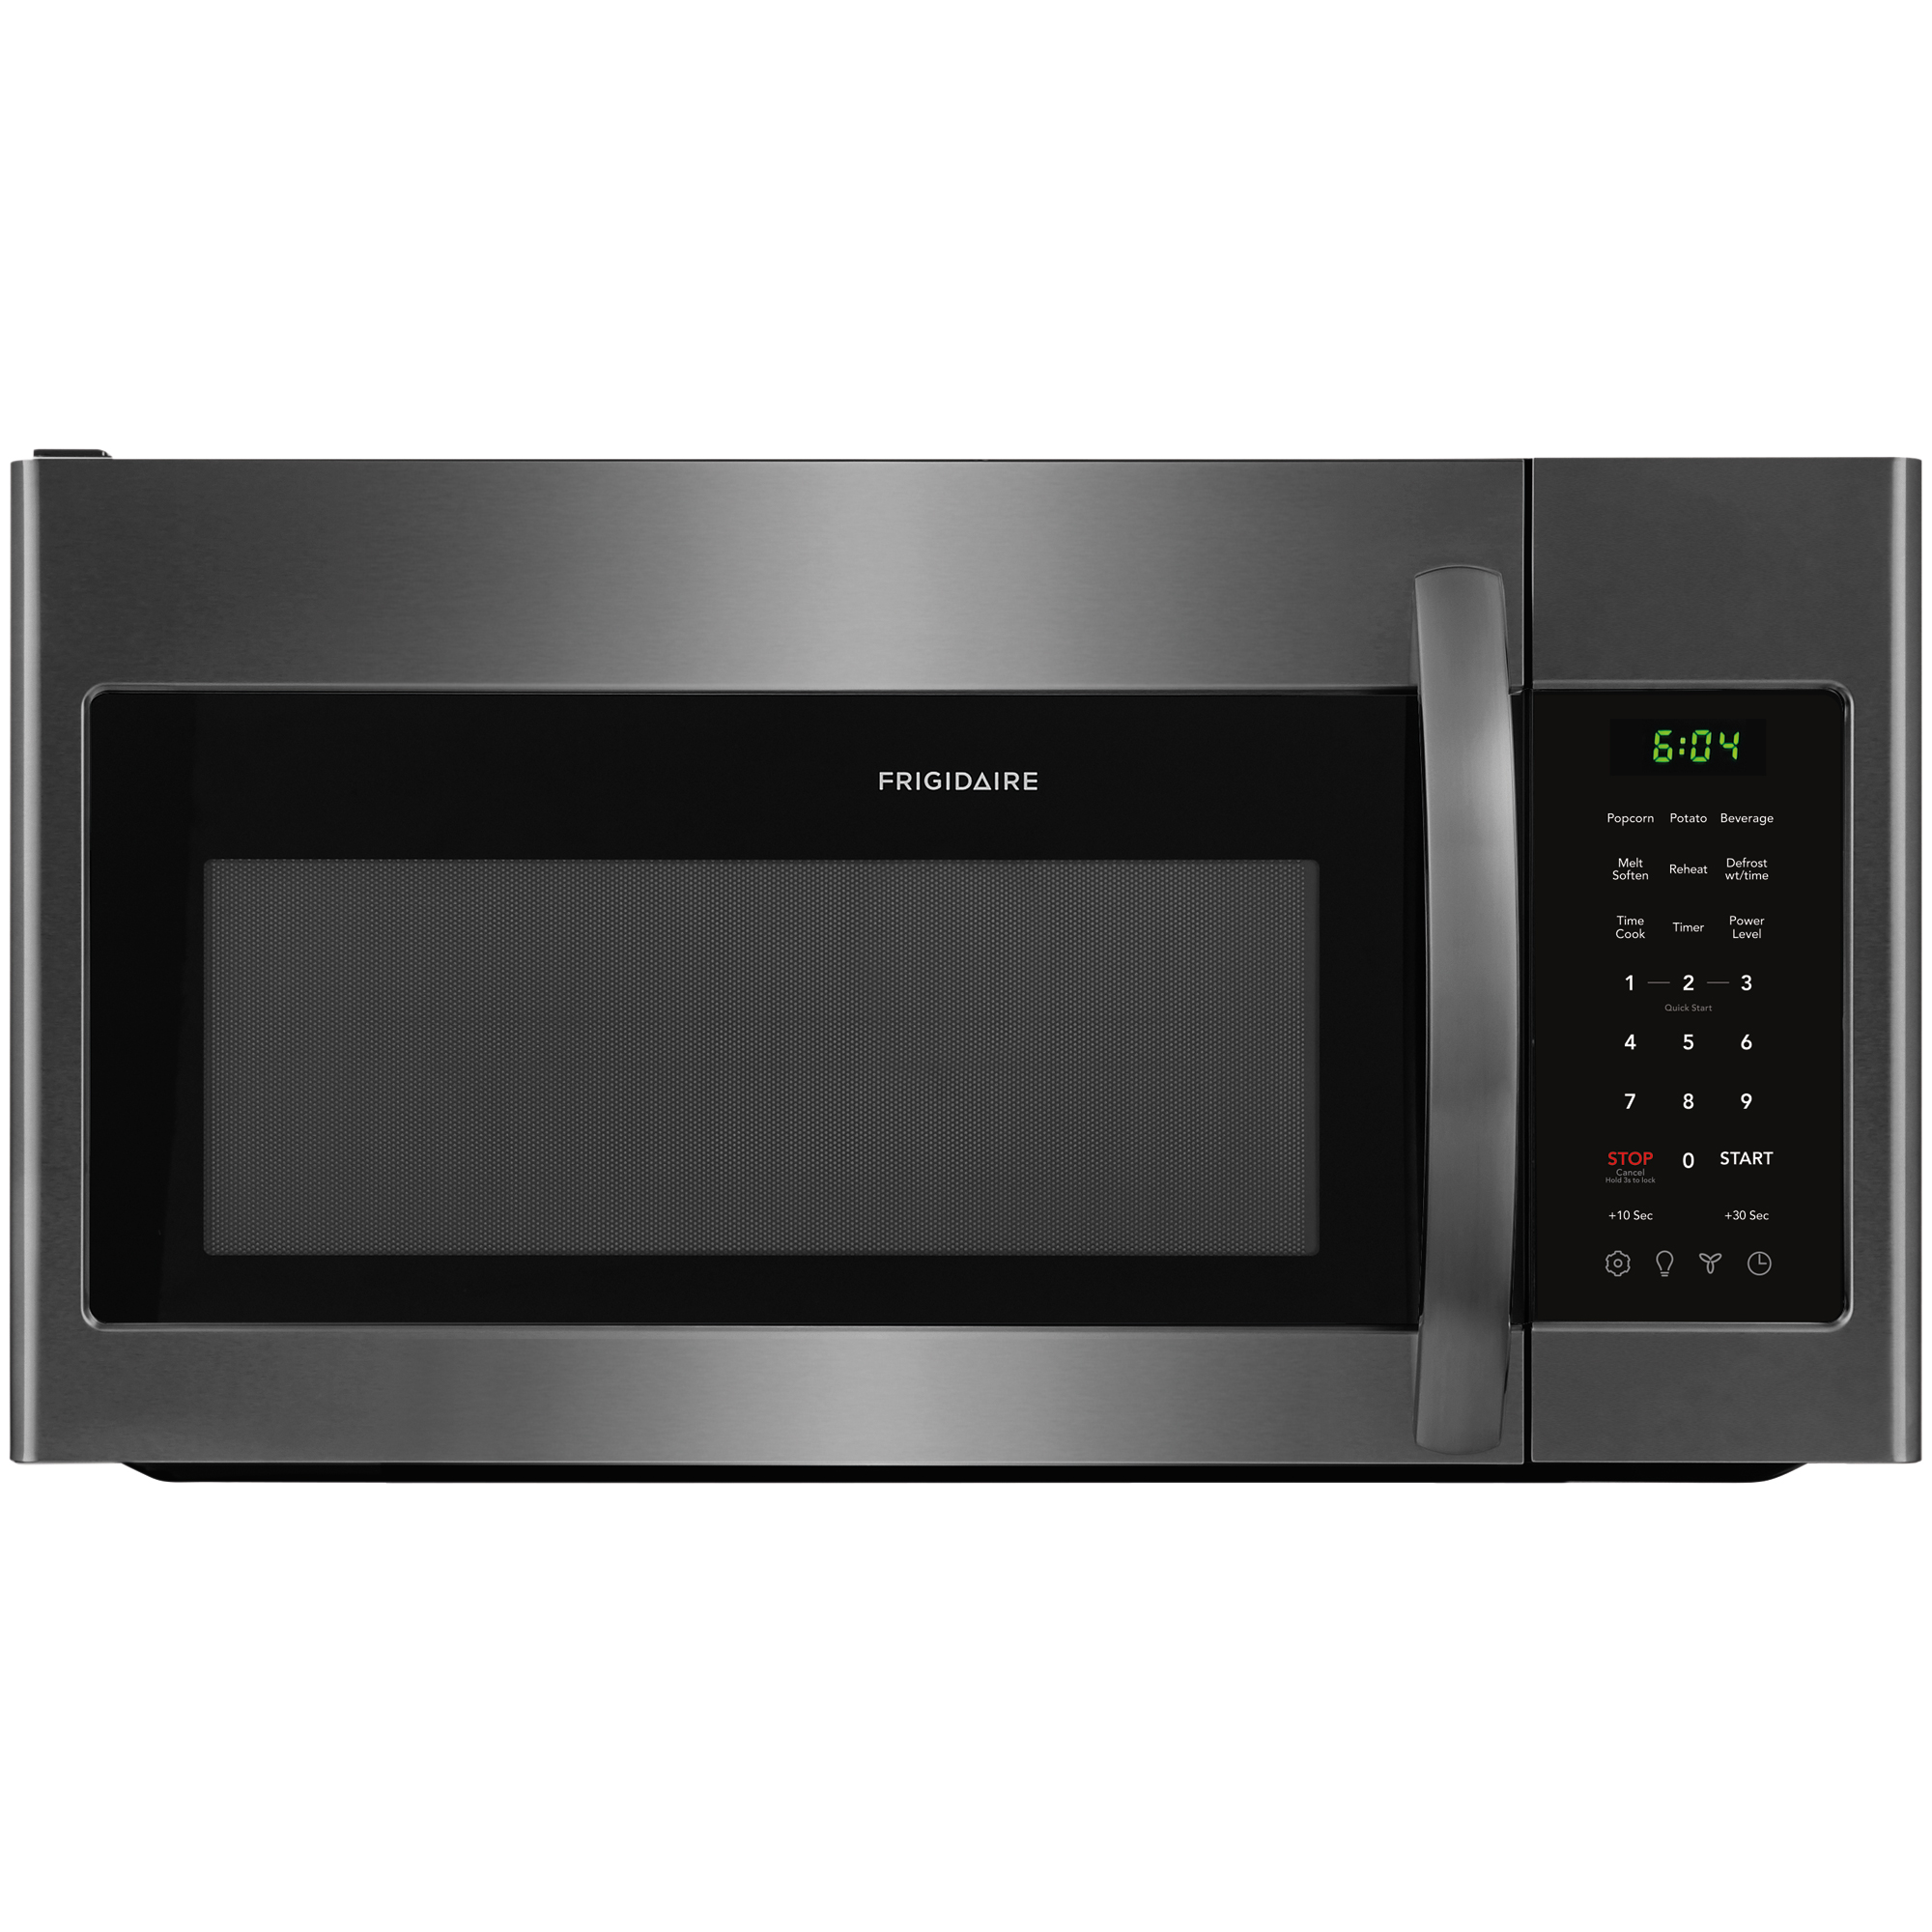 frigidaire ffmv1846vd 1 8 cu ft over the range microwave oven black stainless